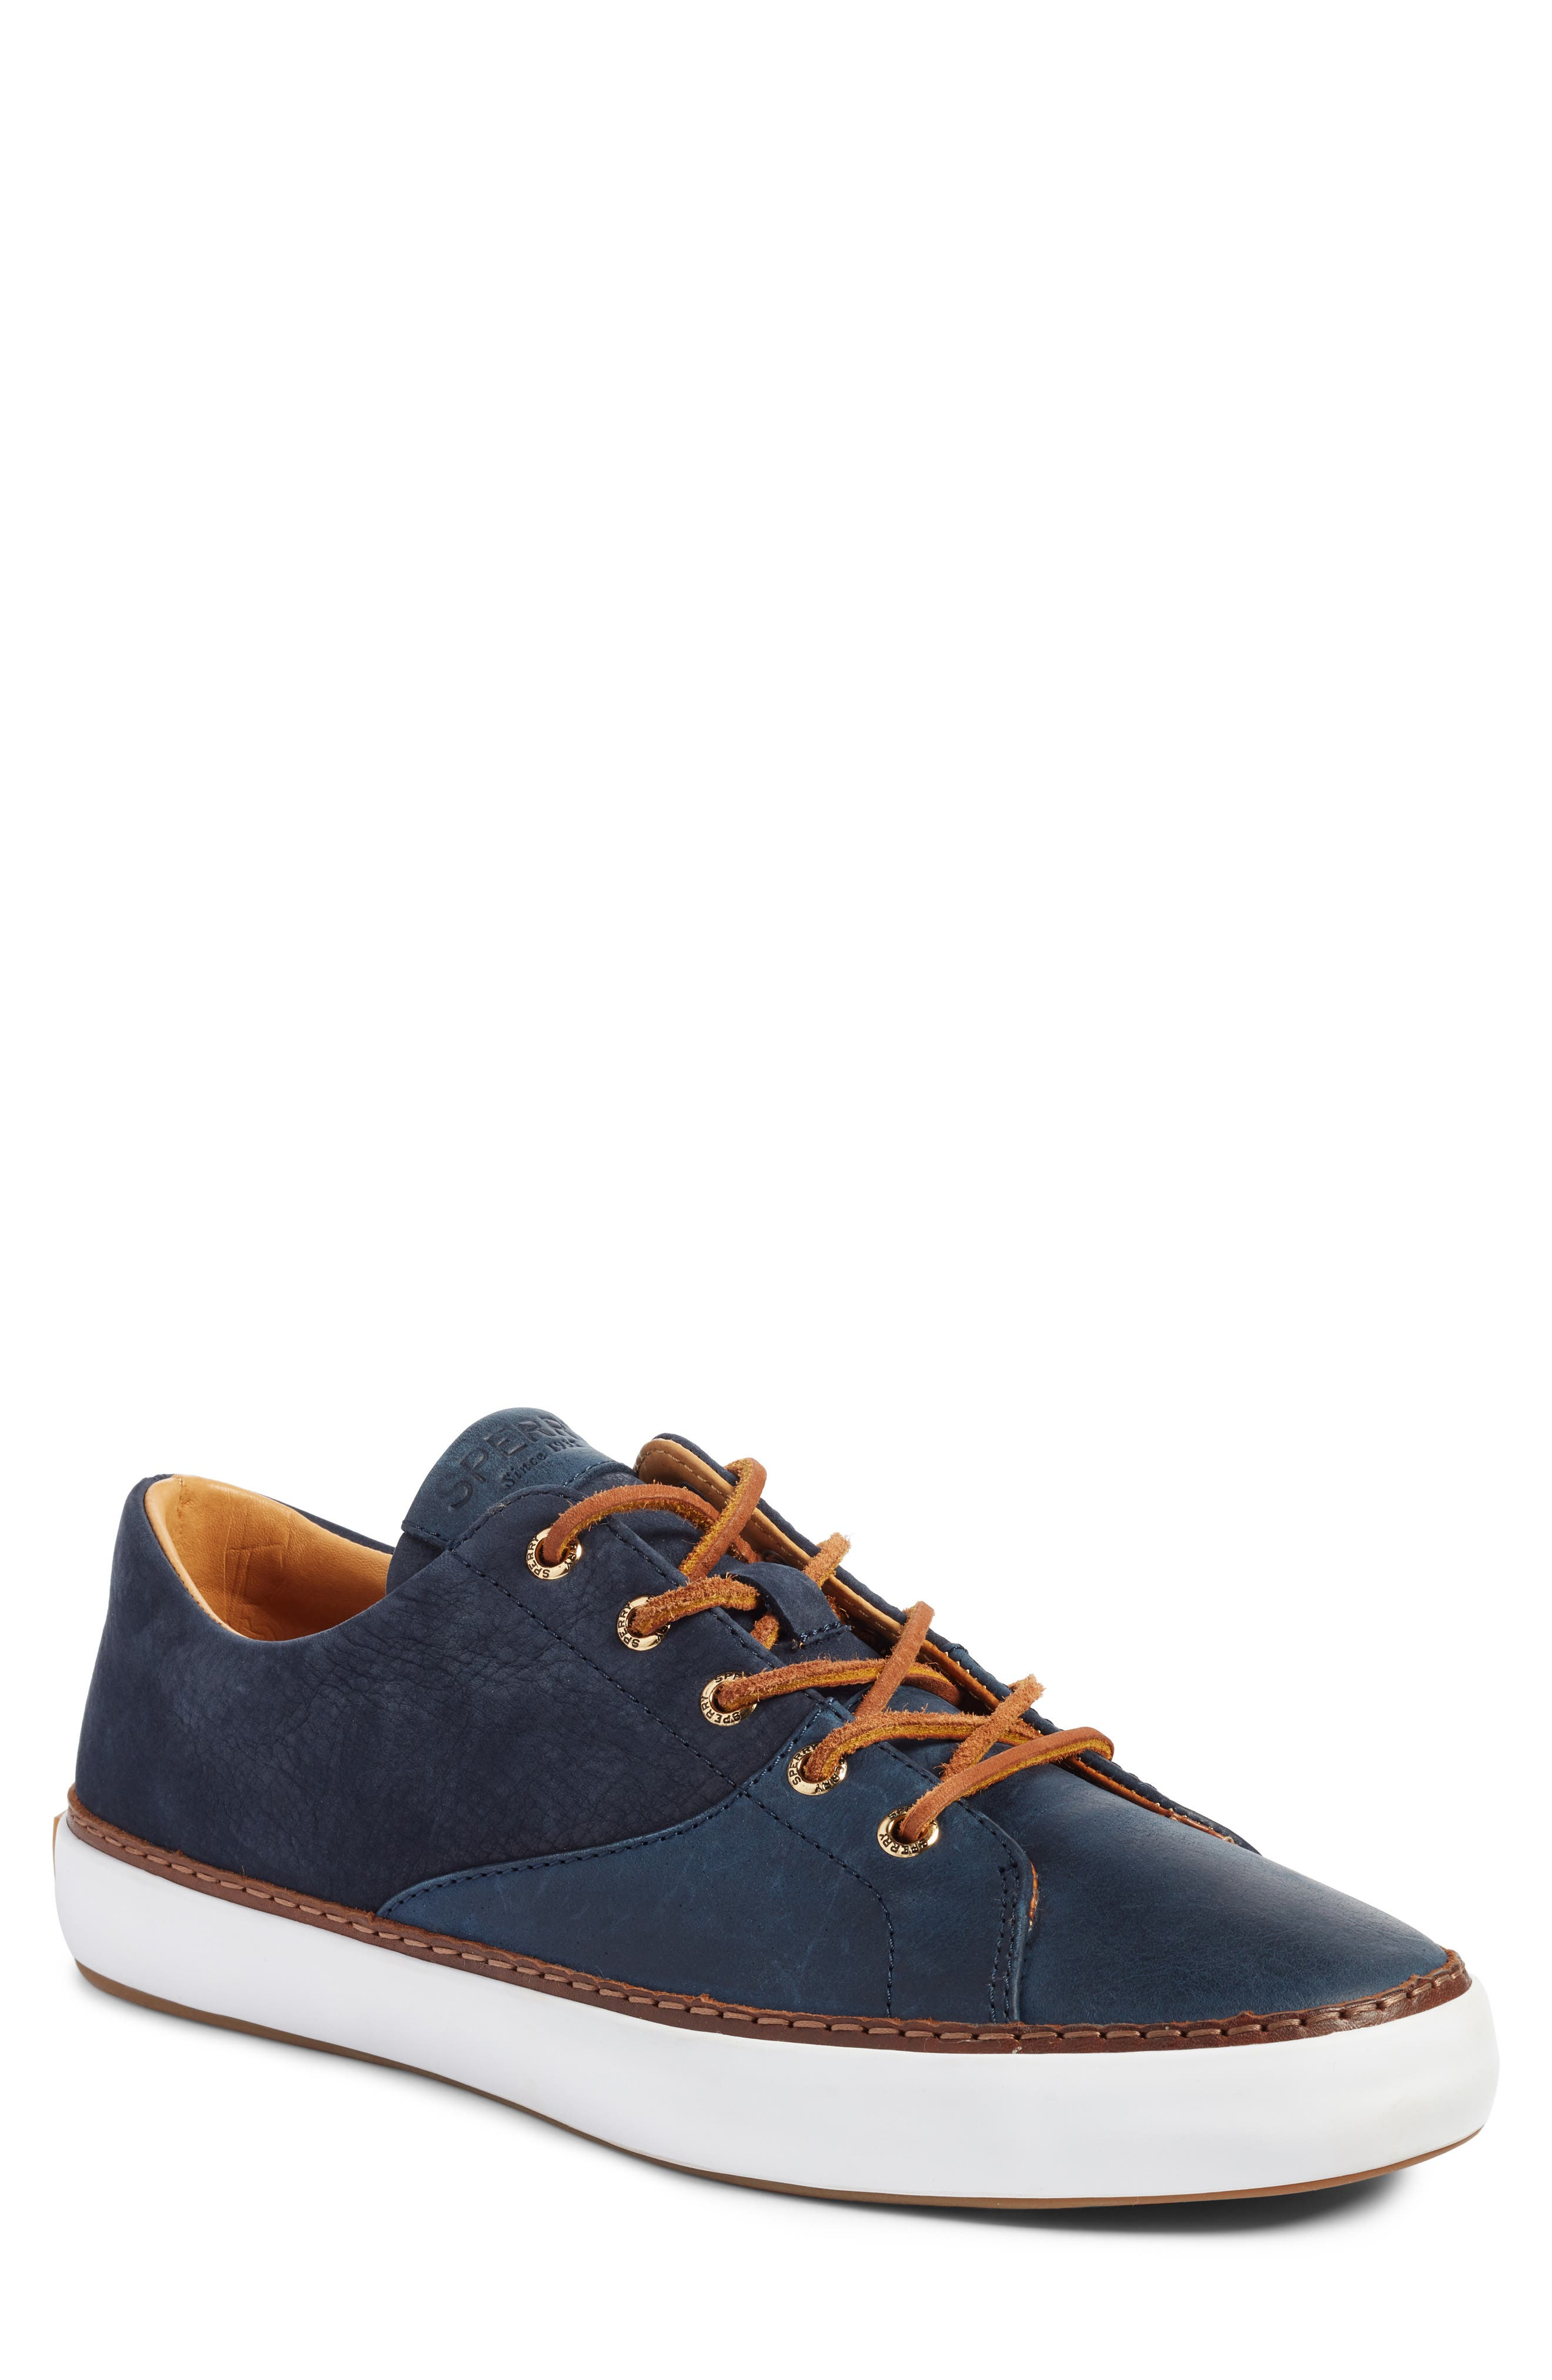 Gold Cup Haven Sneaker,                         Main,                         color, Navy Leather